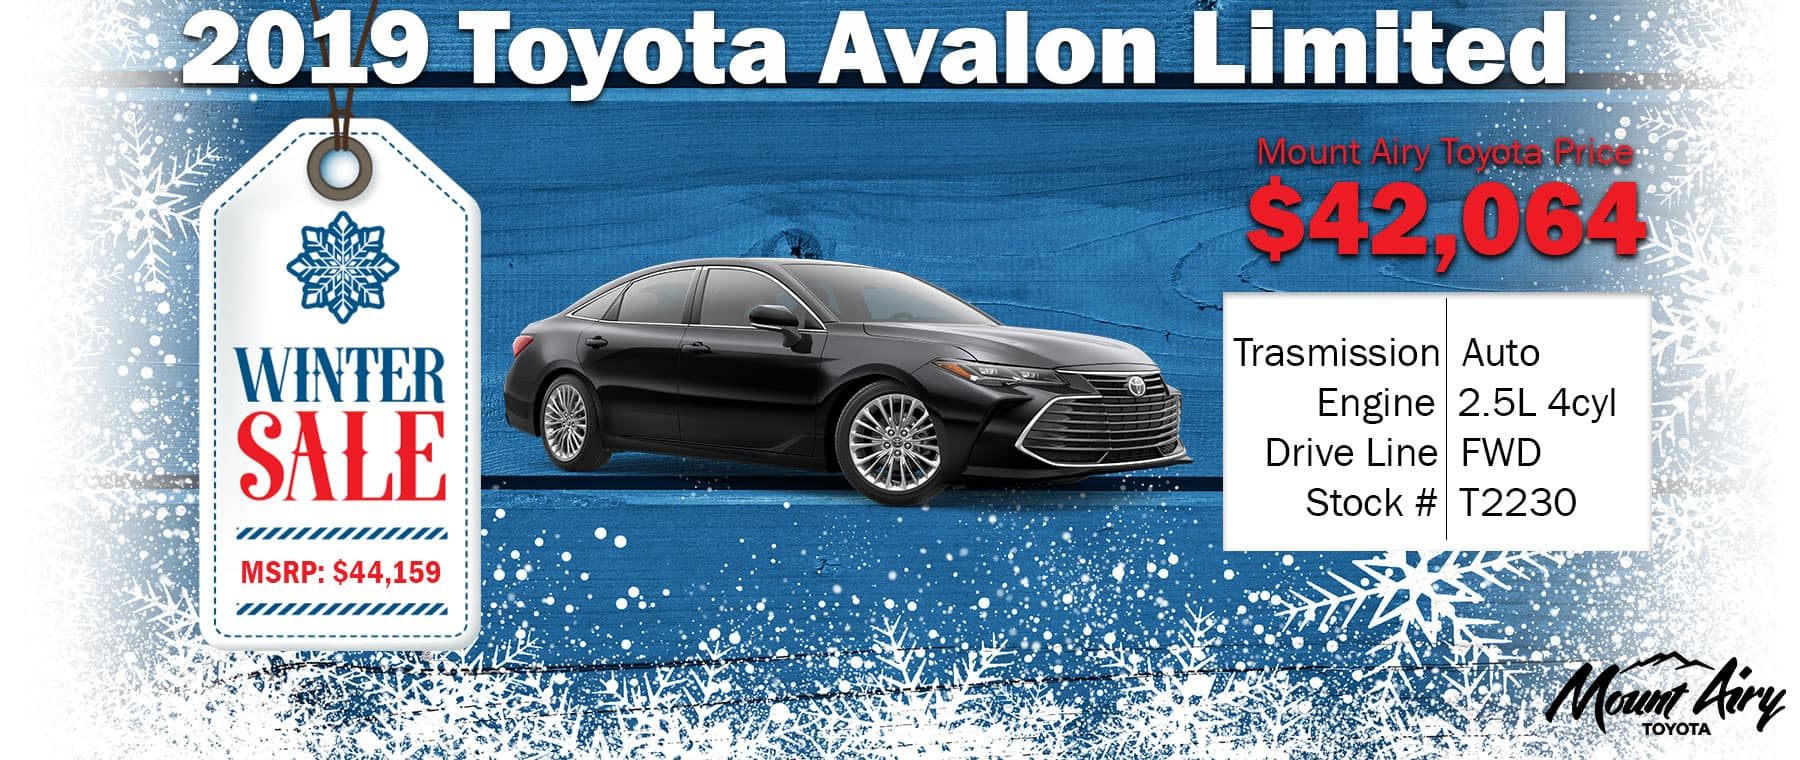 Best Toyota Avalon Mount Airy